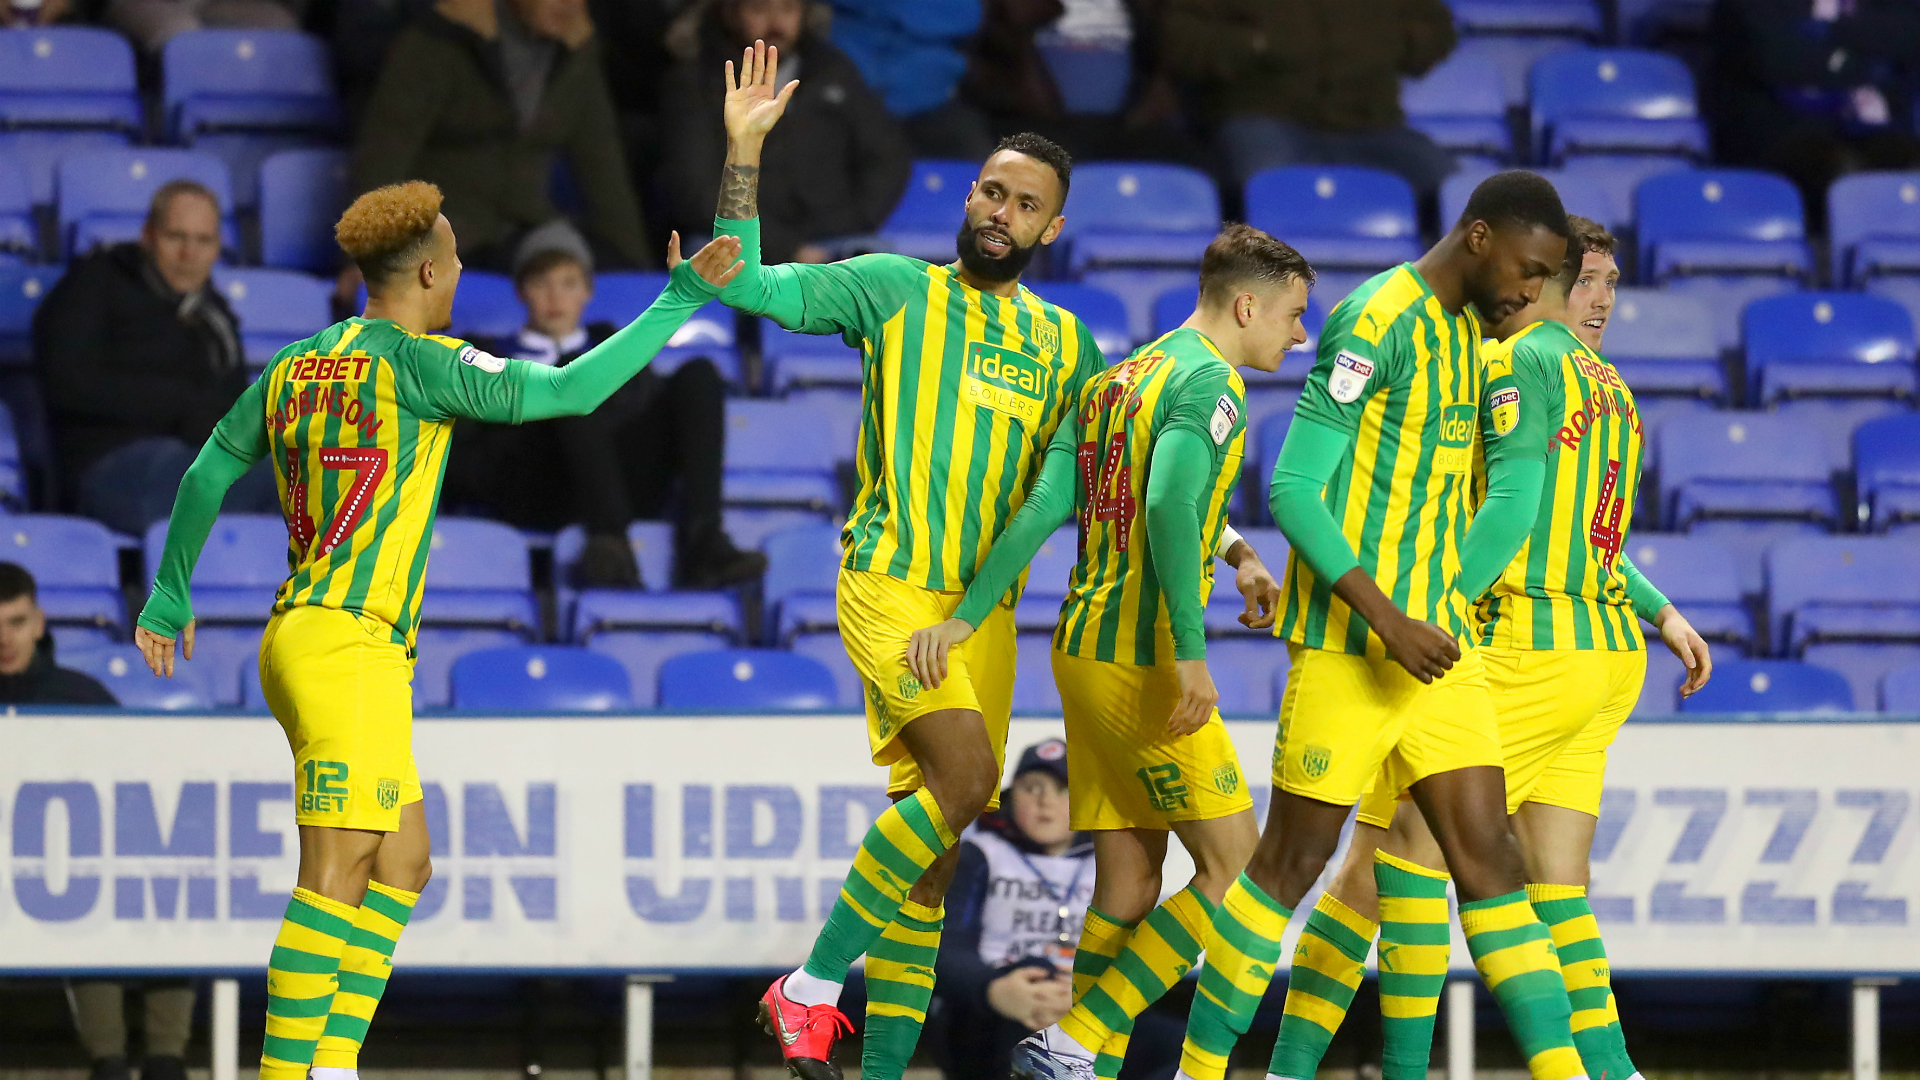 Championship: Baggies move six clear as Fulham miss chance to go second